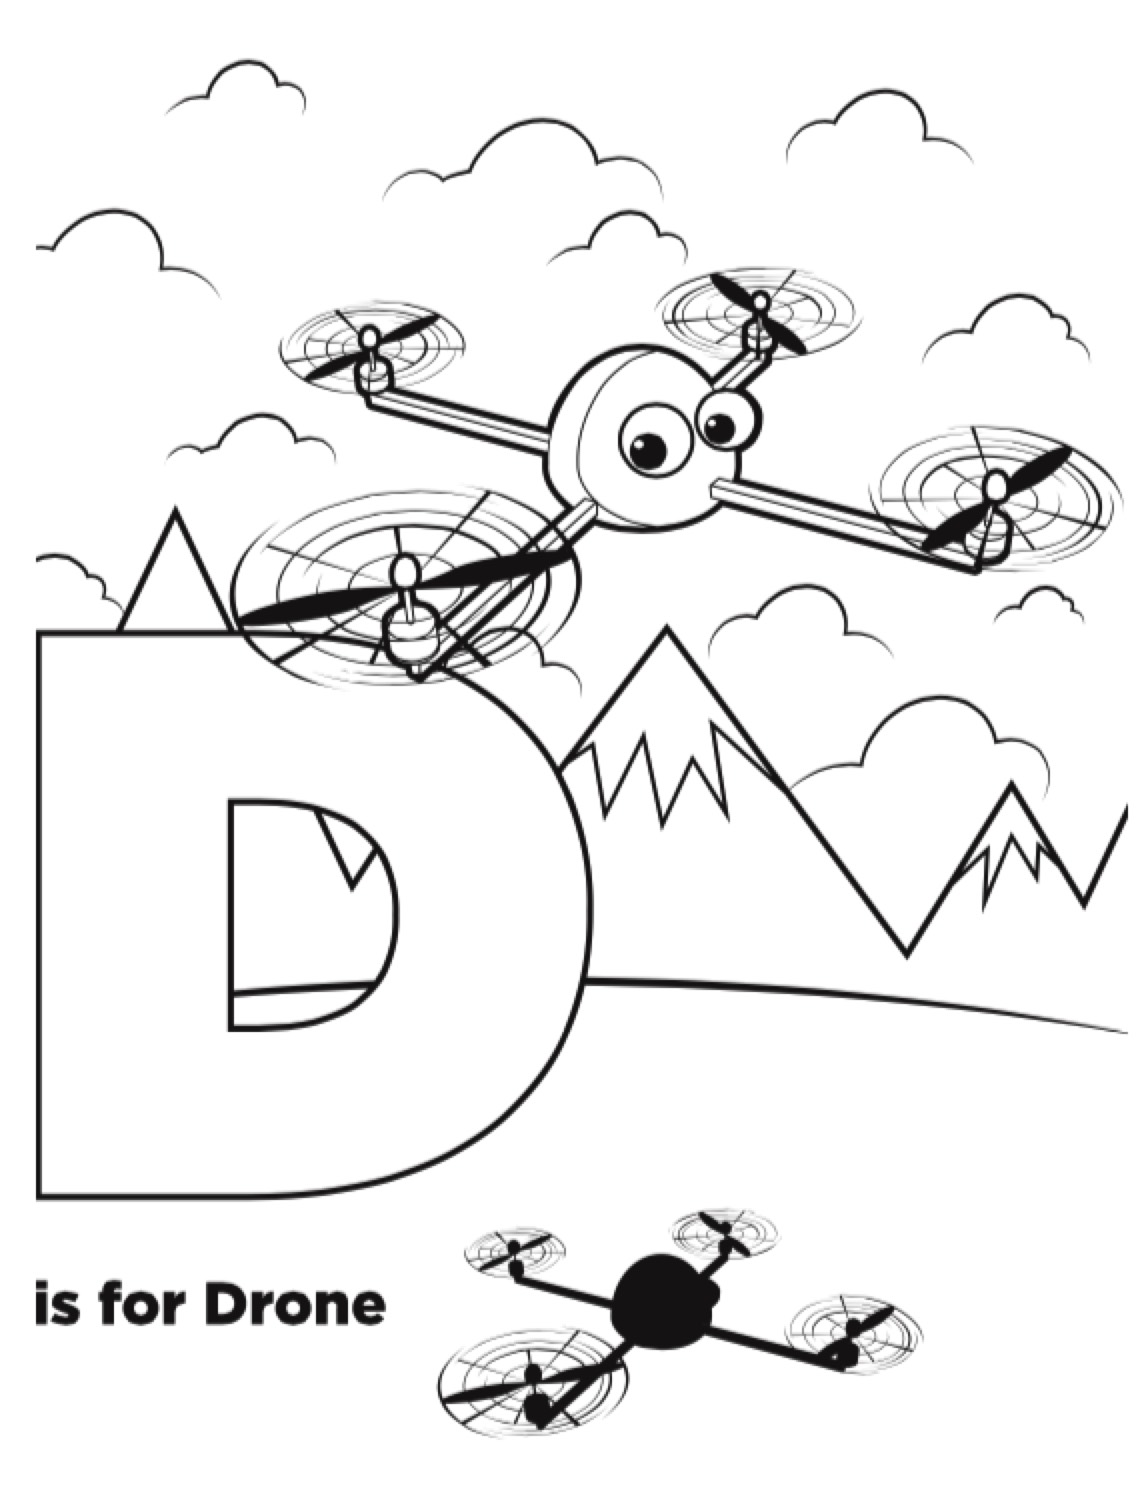 faa to announce new rules for flying drones 10am today  u00ab adafruit industries  u2013 makers  hackers